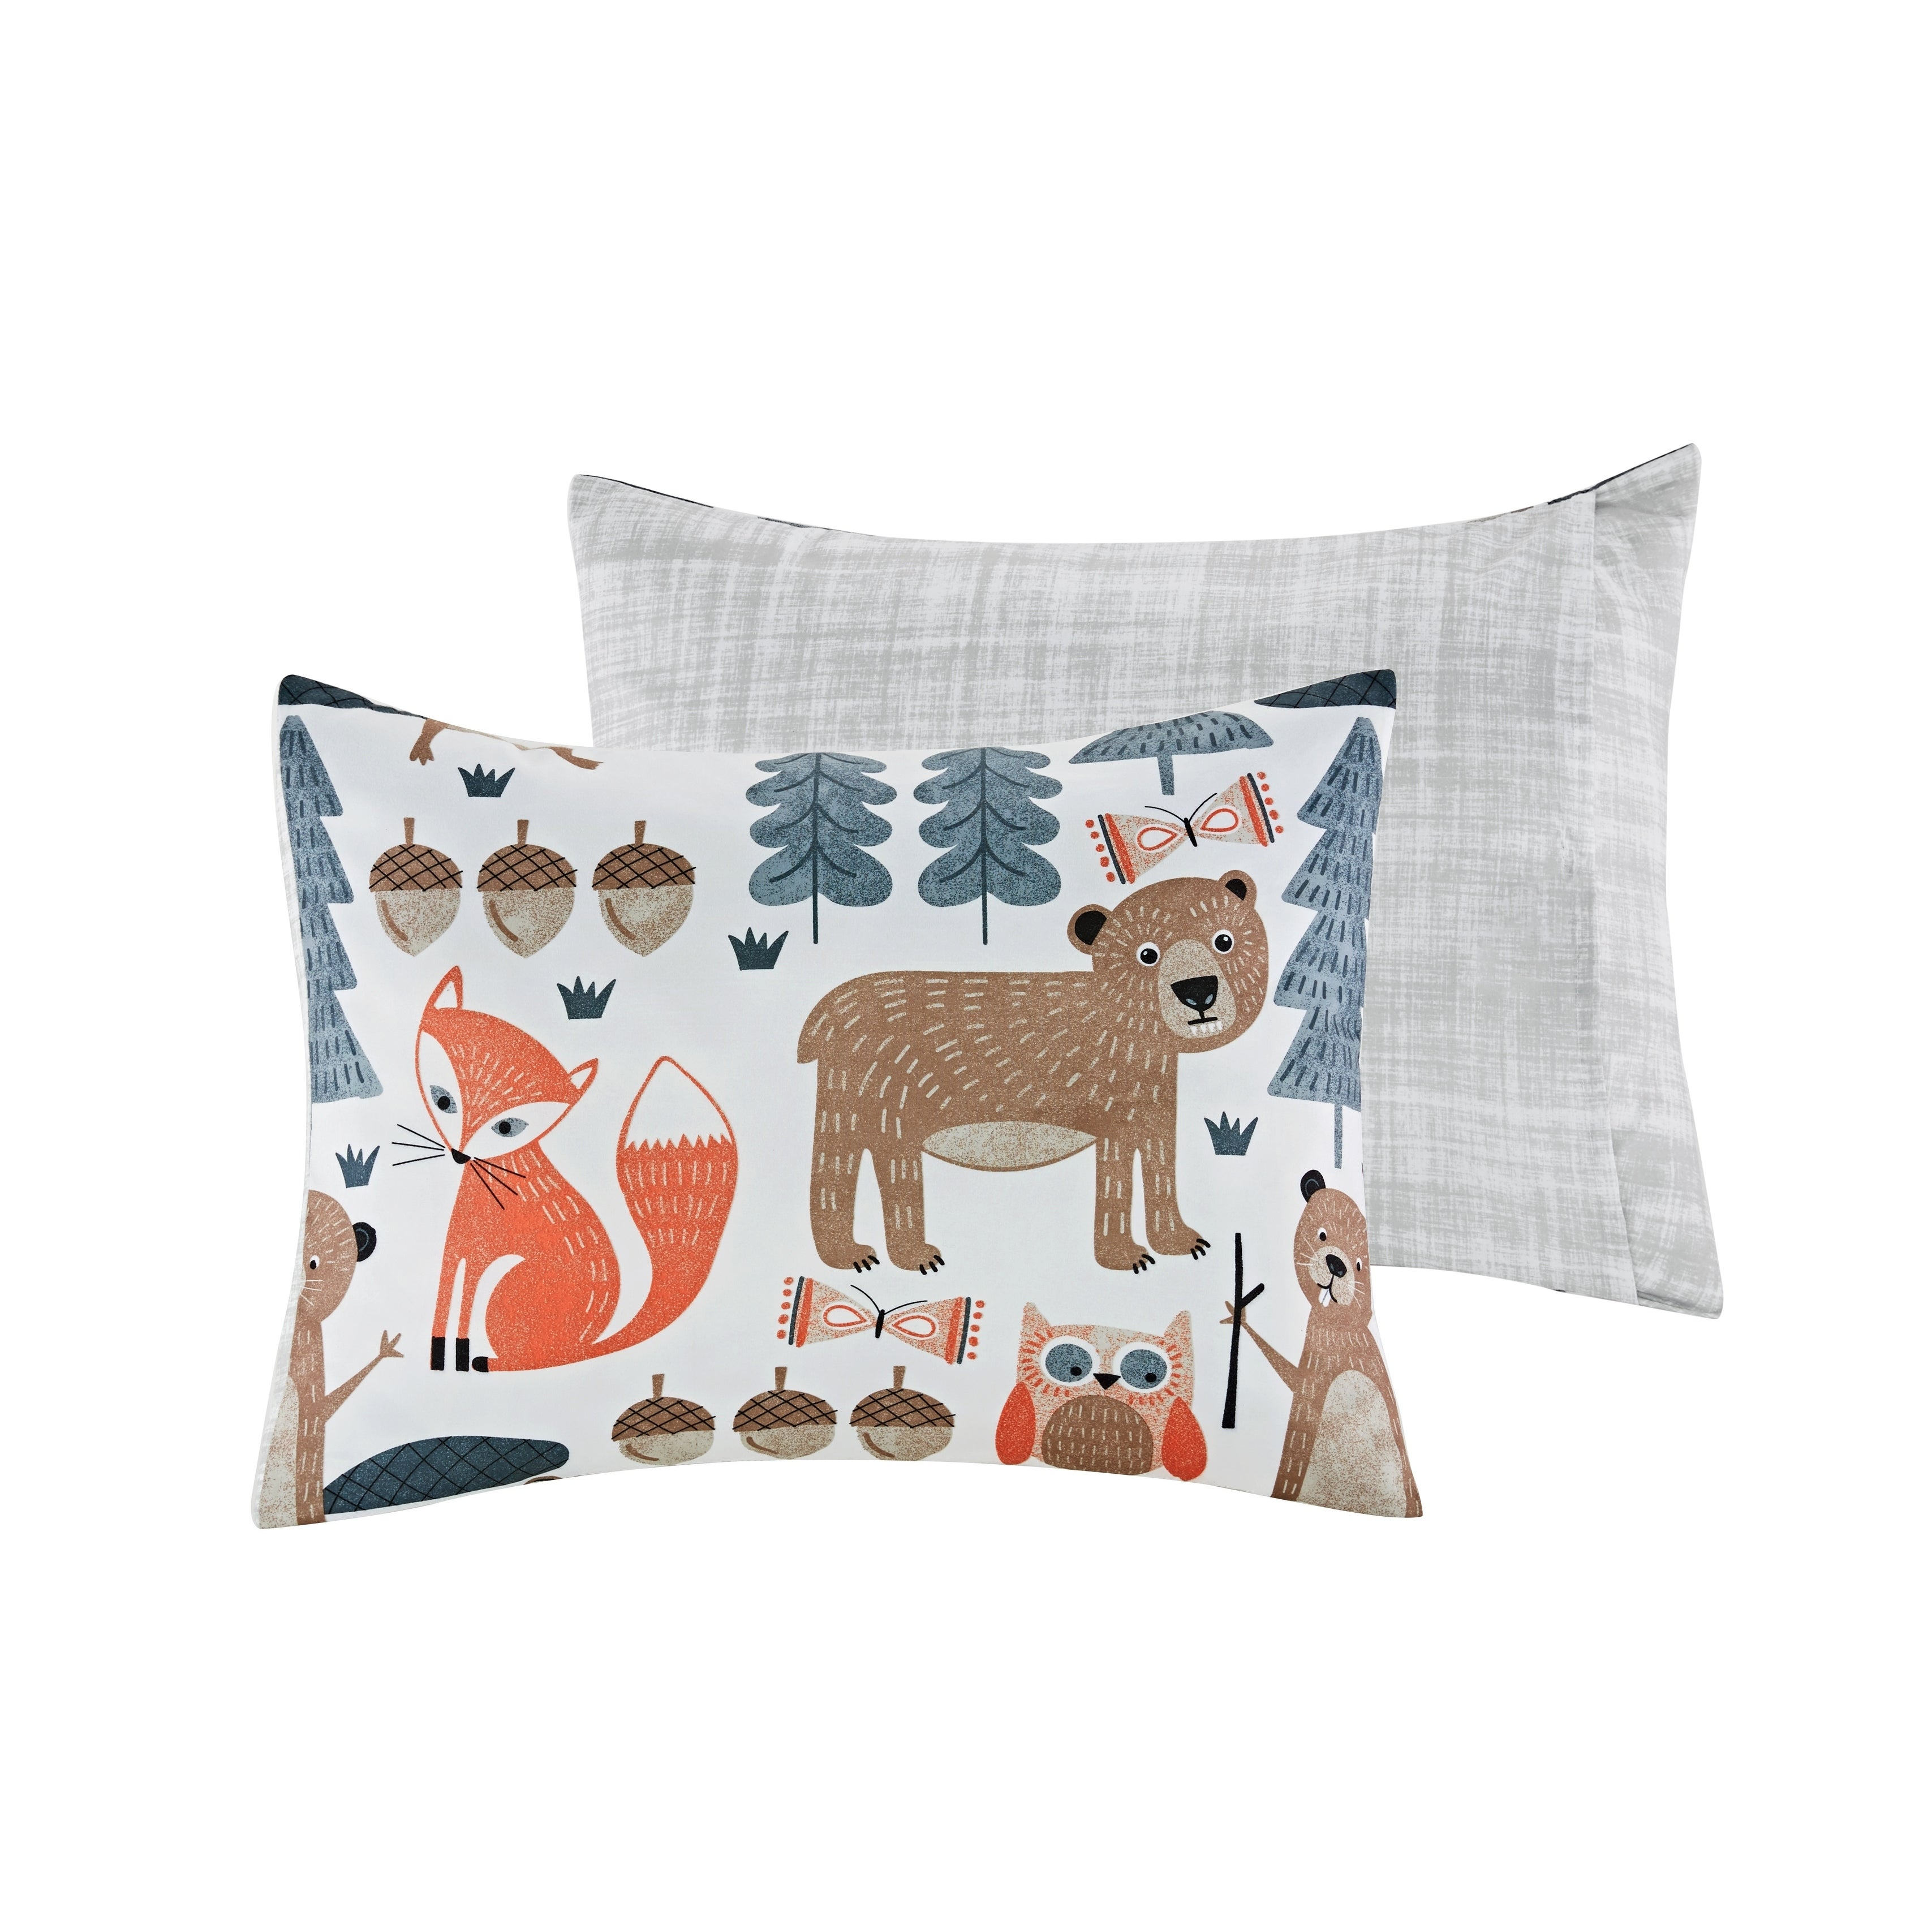 VCNY-Home-Little-Campers-Comforter-Set thumbnail 8